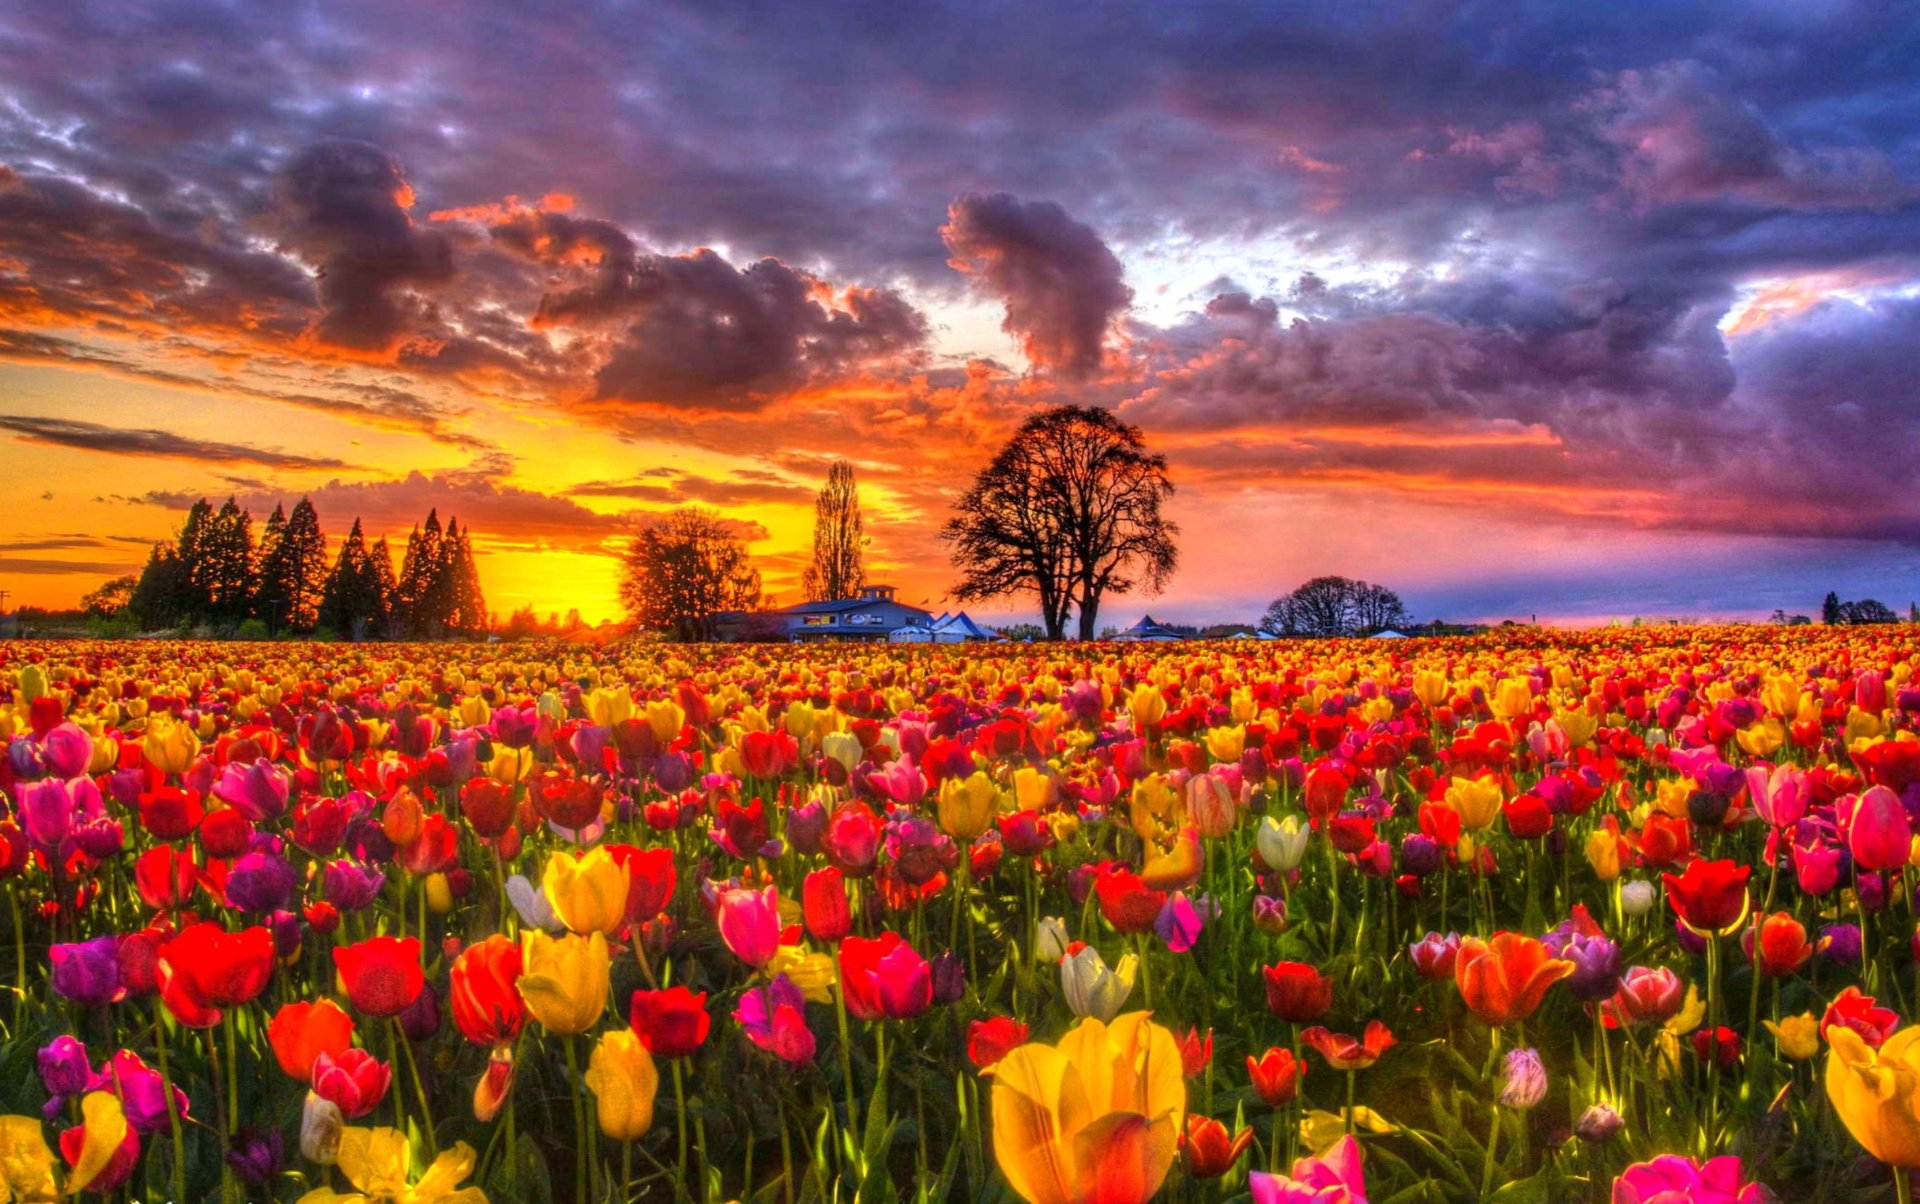 Spring Flowers Tulips Field Sunrise Grass Clouds